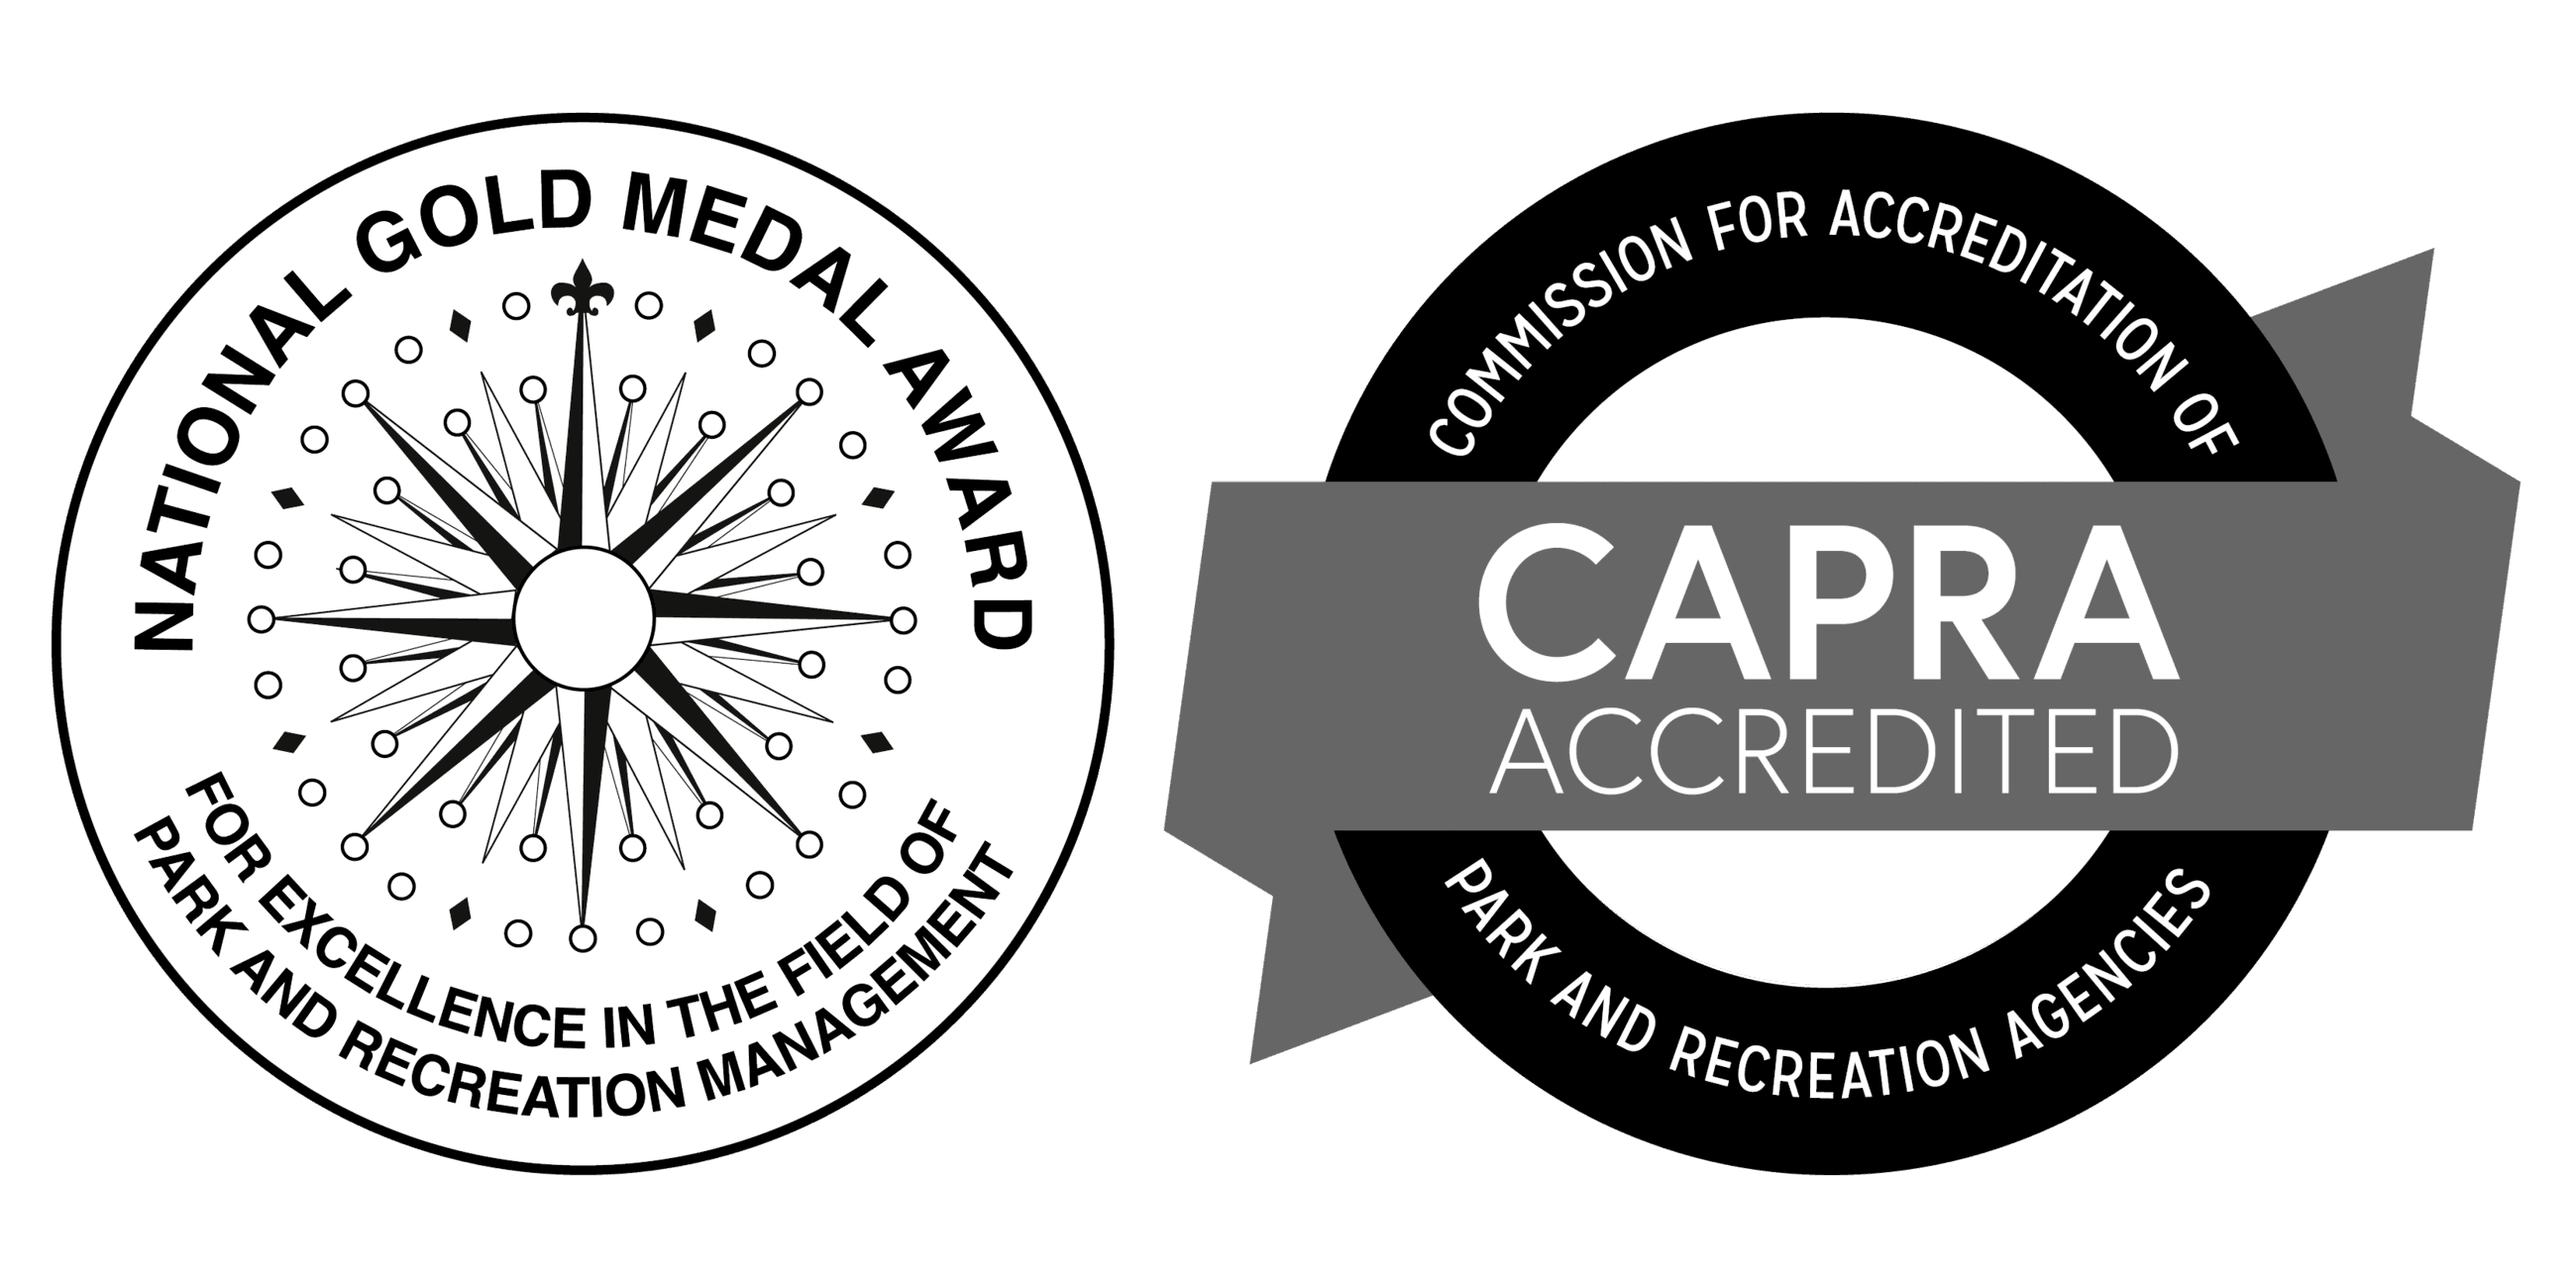 CAPRA and Gold Medal logos